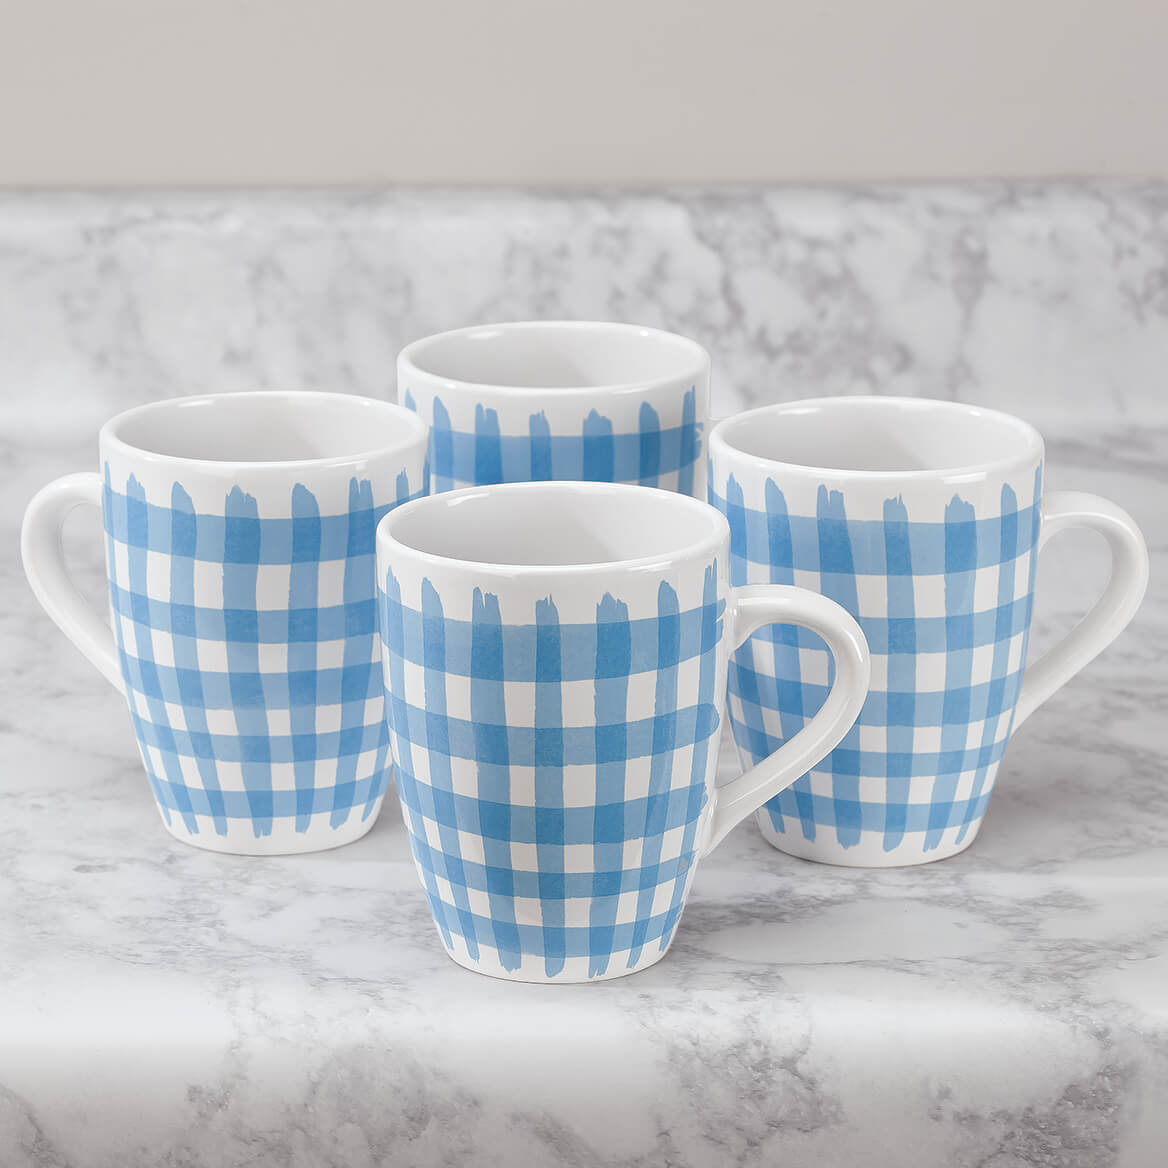 Blue Shirt Mugs by William Roberts, Set of 4-369198